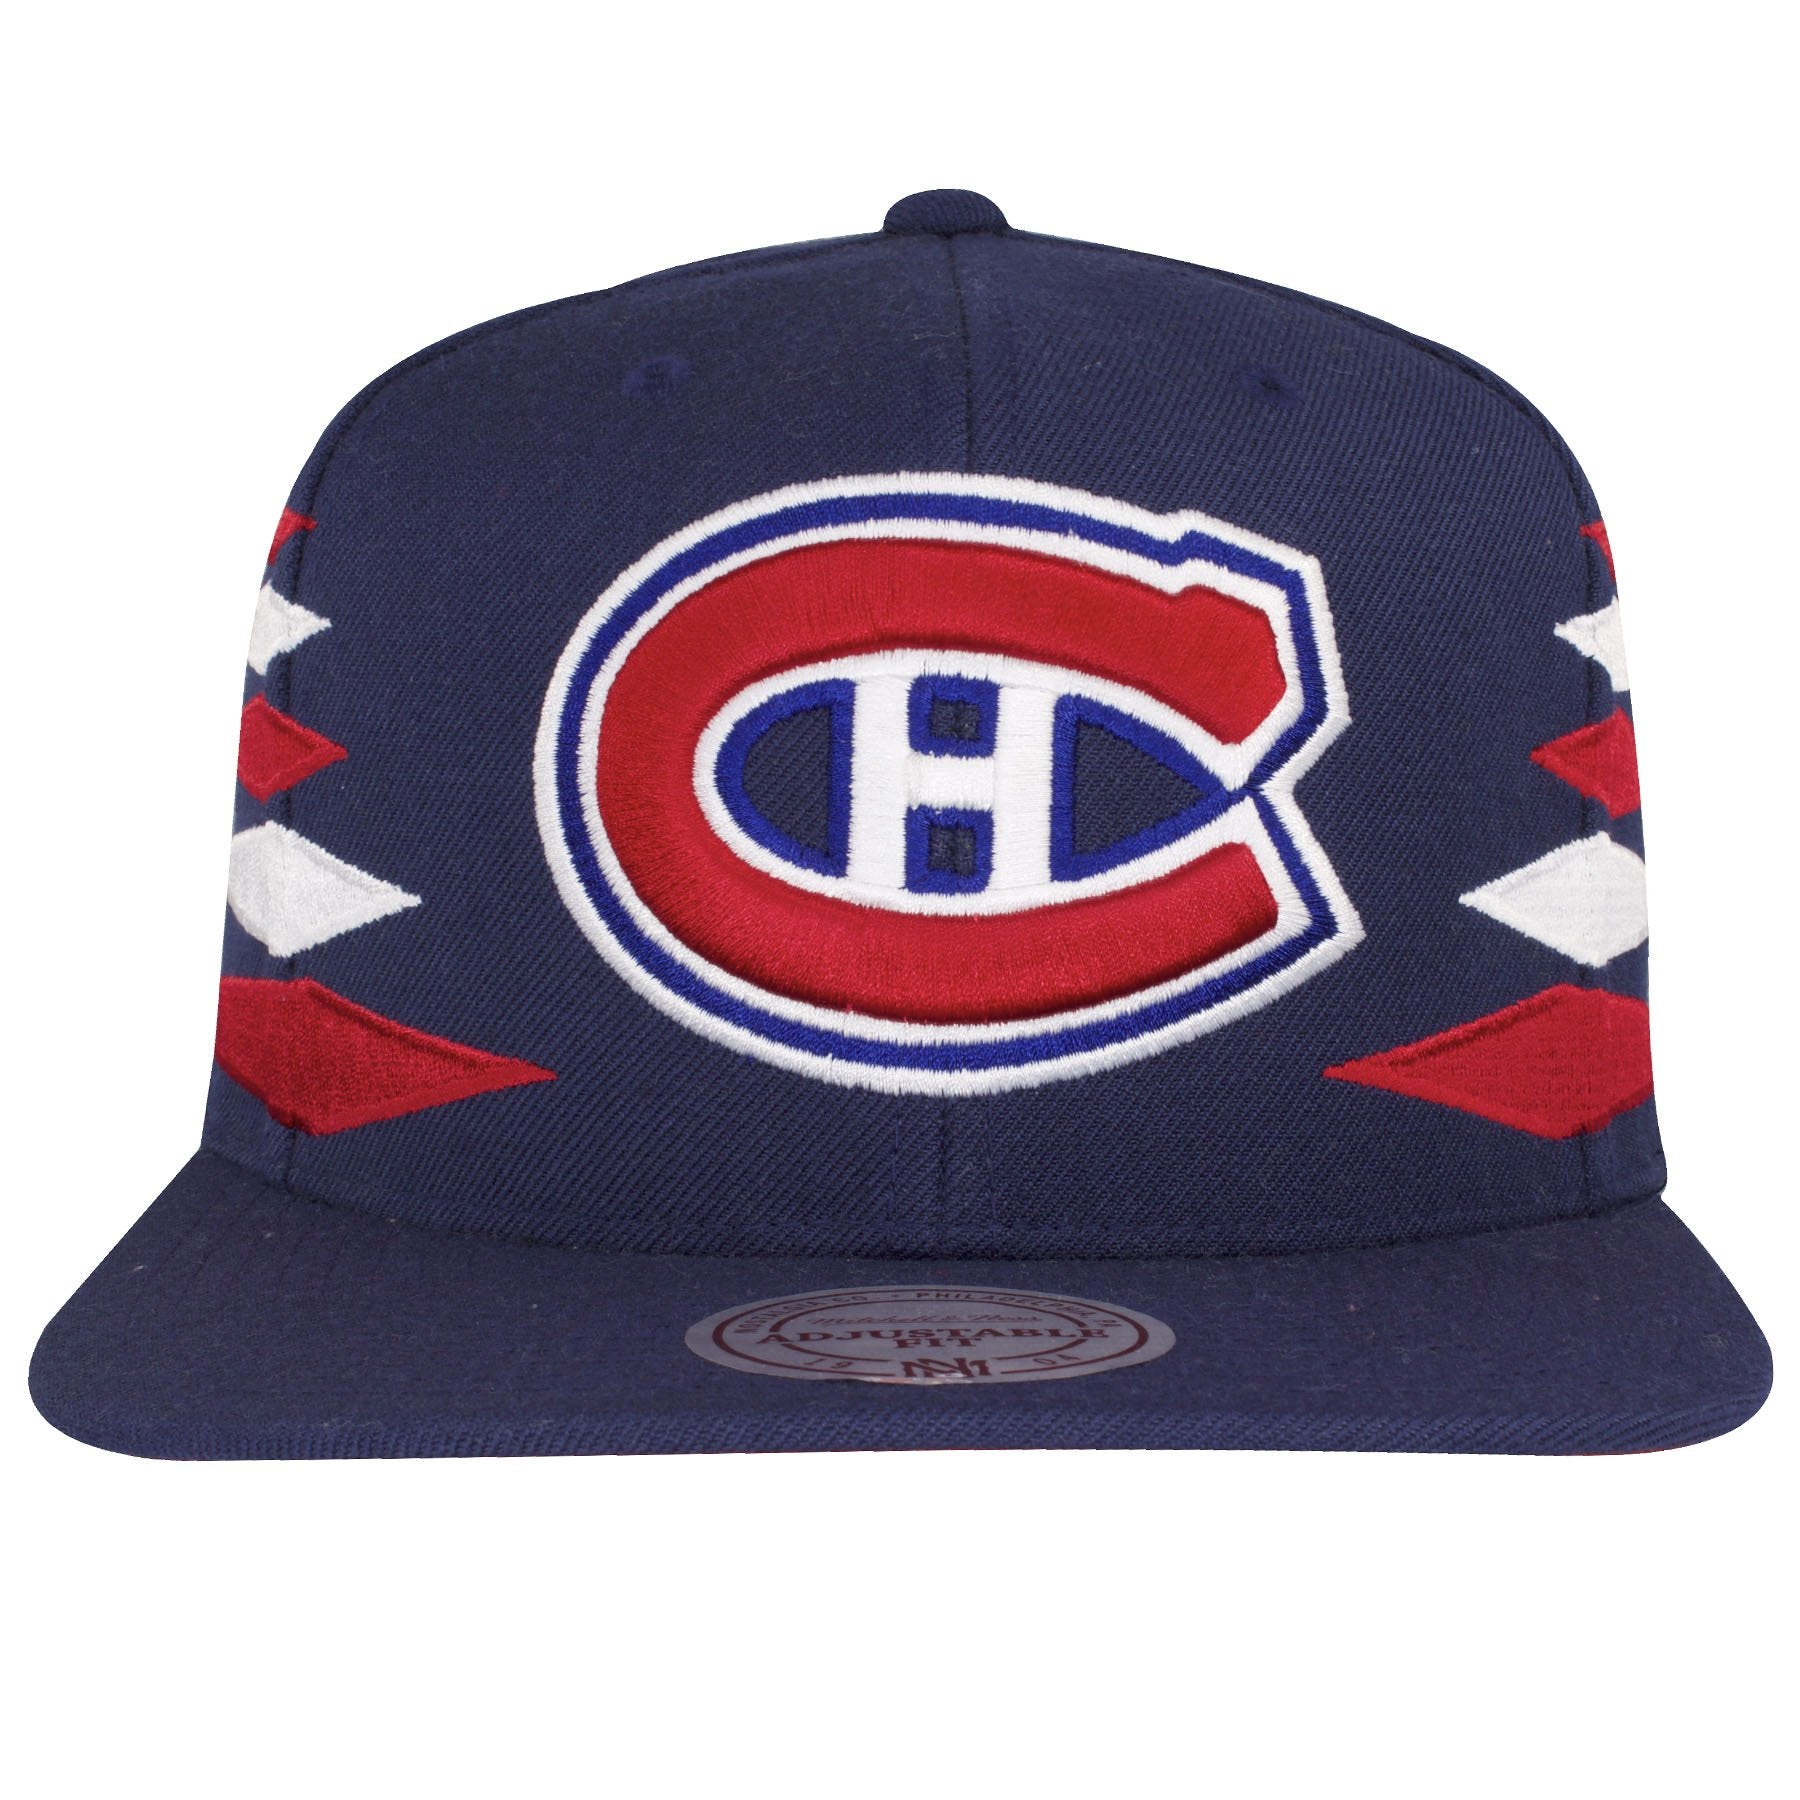 332ac31ec0e on the front of the montreal canadiens diamond spike snapback hat is a montreal  canadiens logo